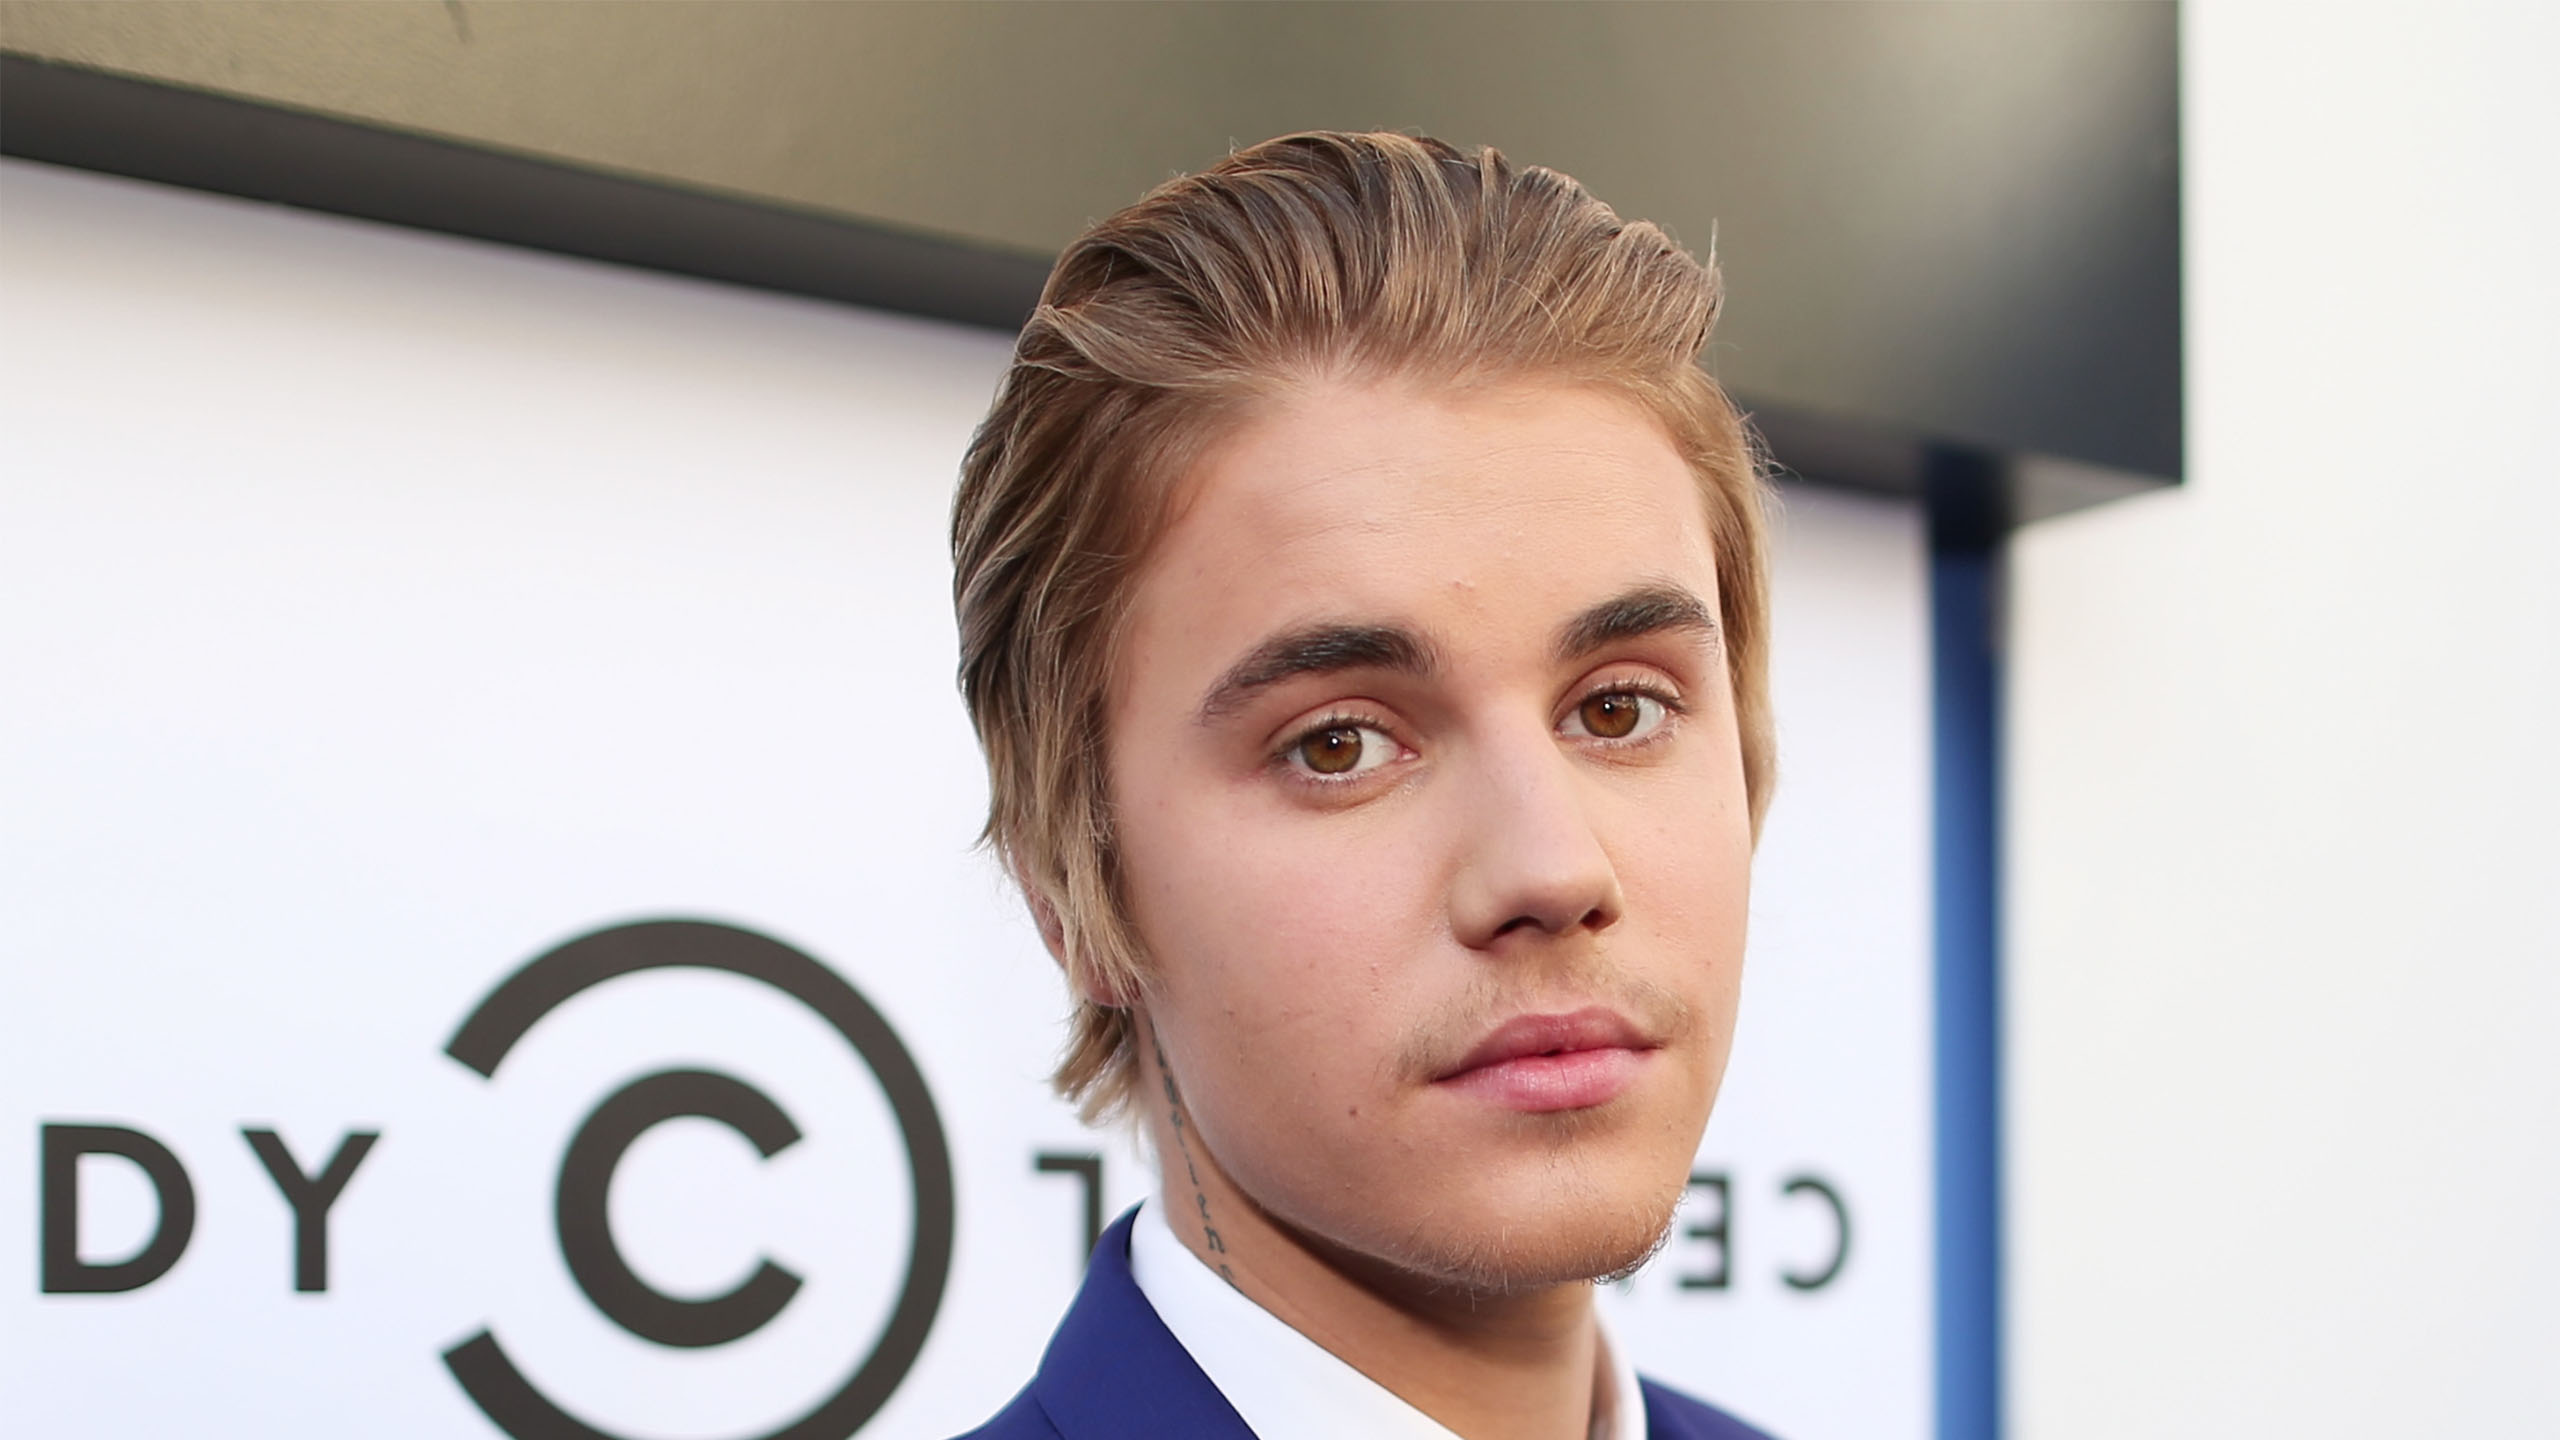 Justin Bieber wallpapers,frame picture,resim nice wallpaper